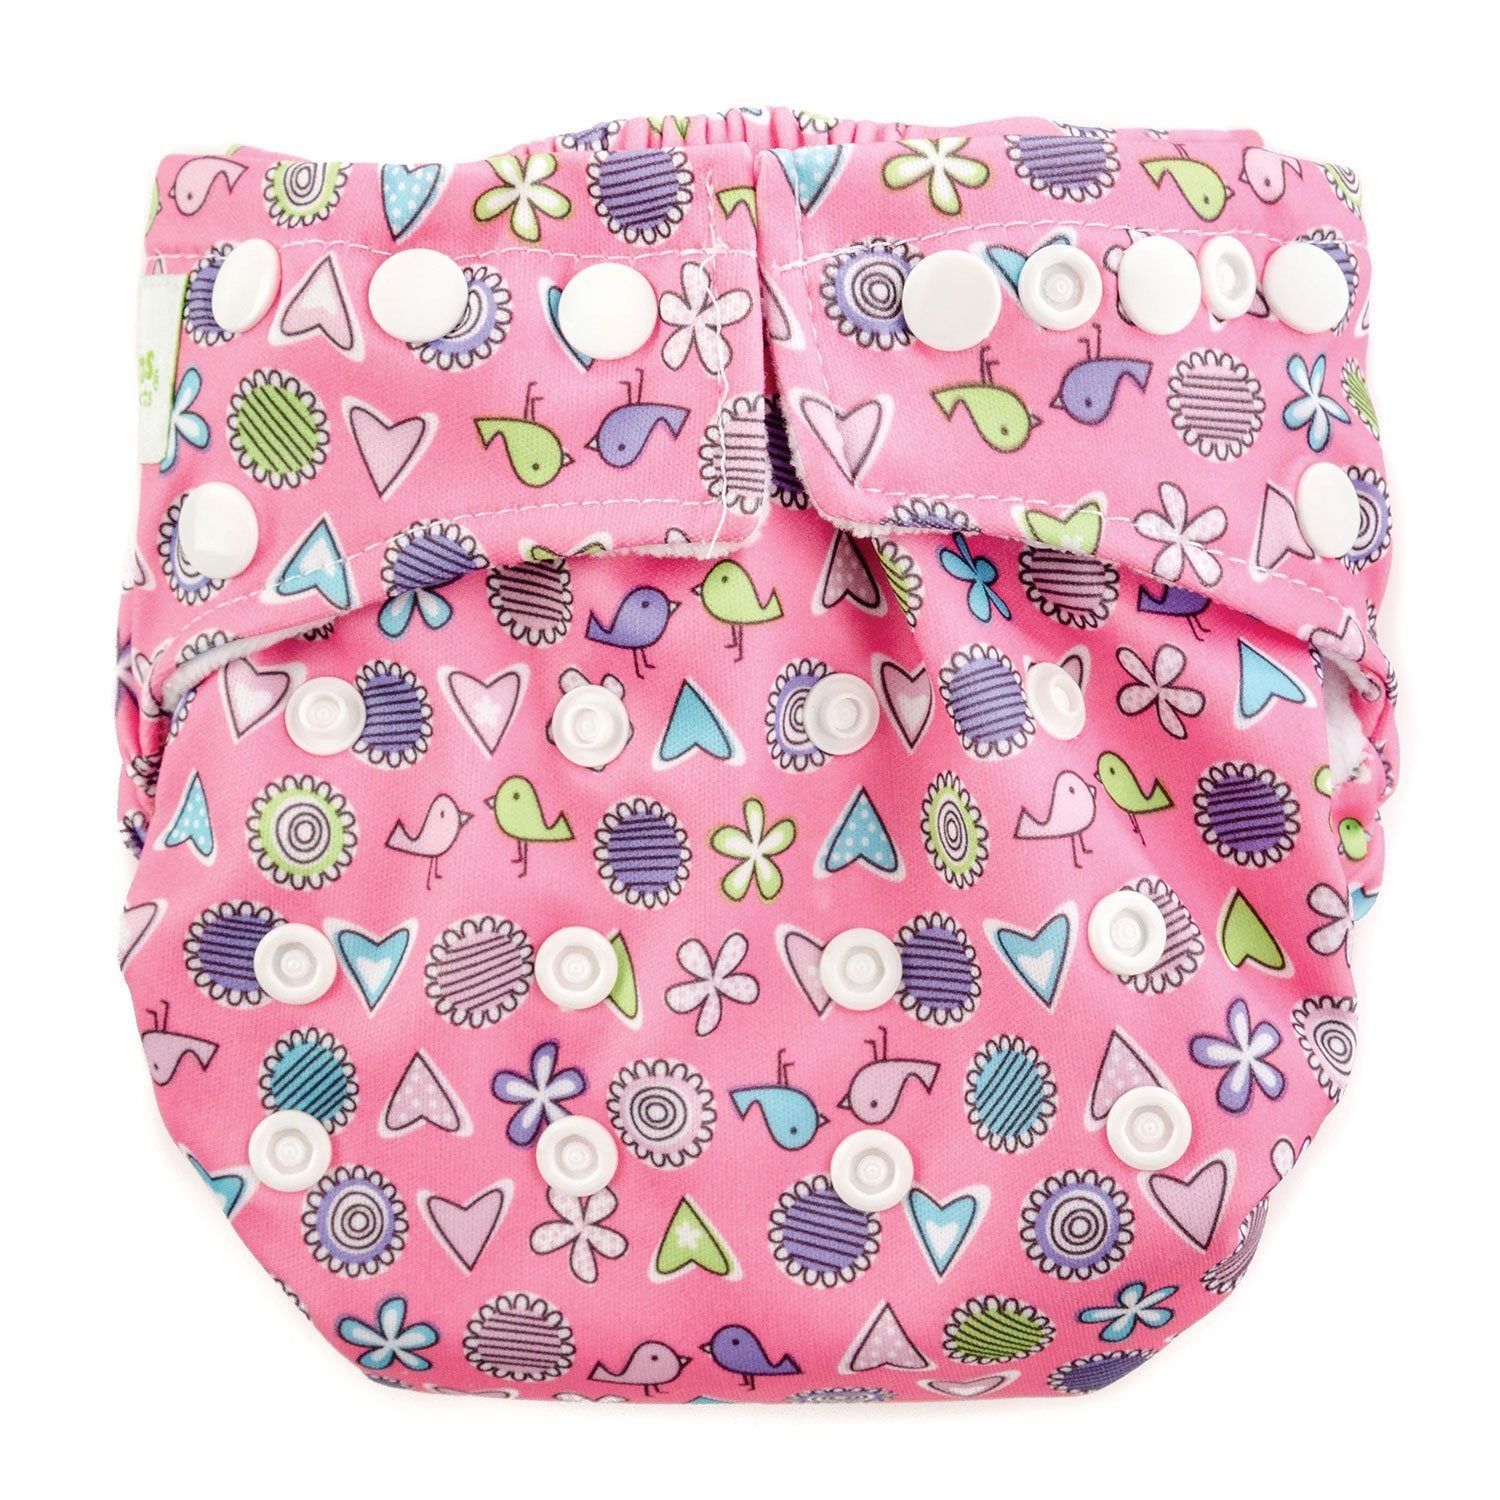 Bumkins Snap-in-One Cloth Diaper Love Birds